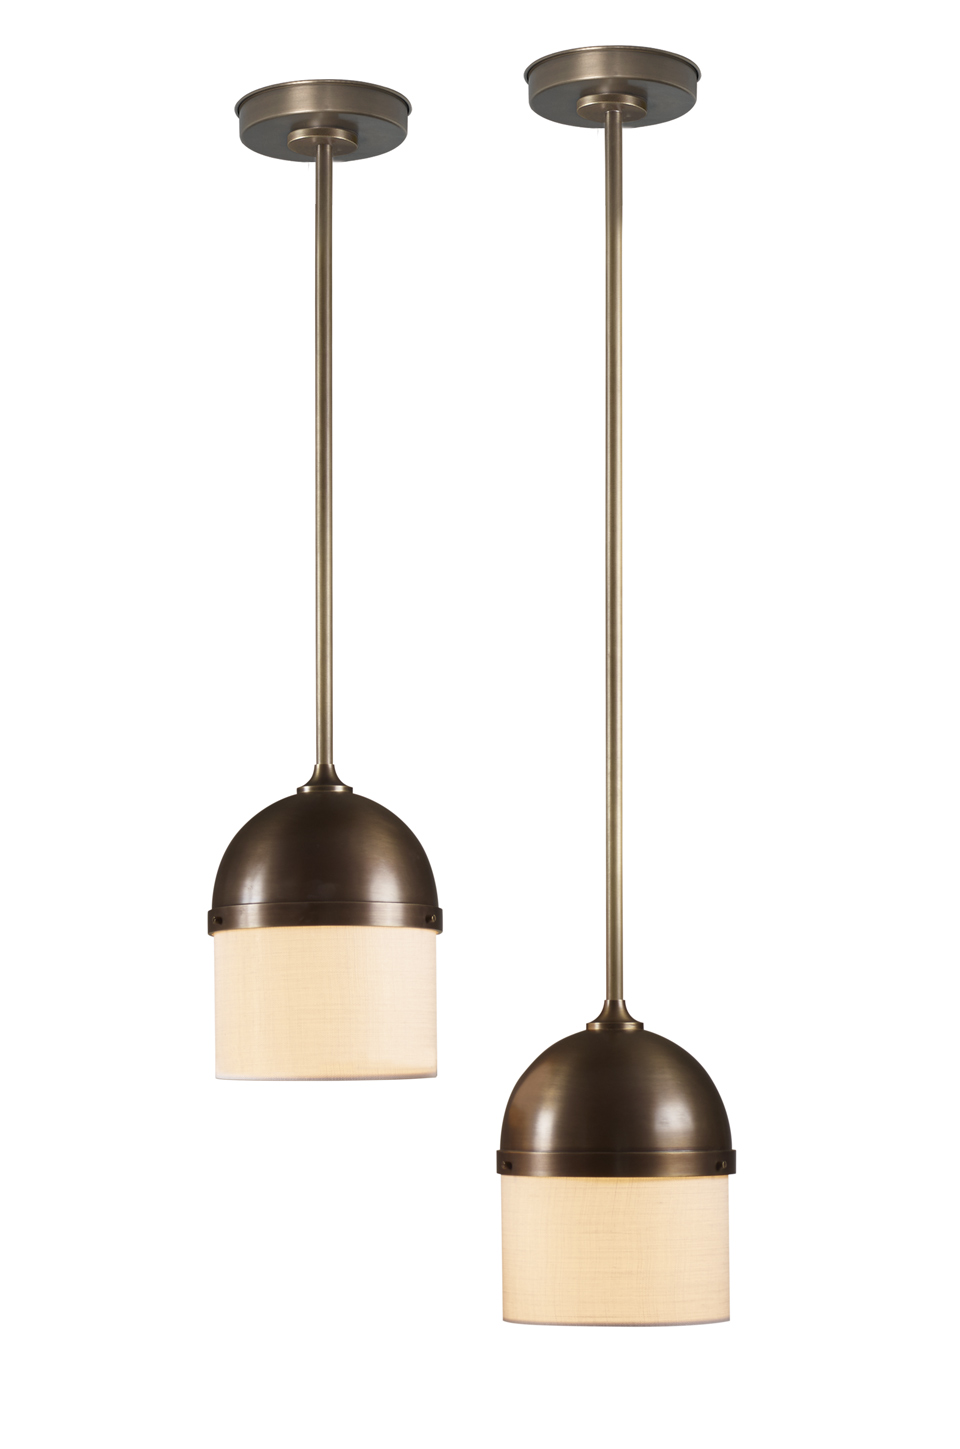 Ombretta is a bronze hanging LED lamp with linen, cotton or silk lampshades, from Promemoria's catalogue | Promemoria